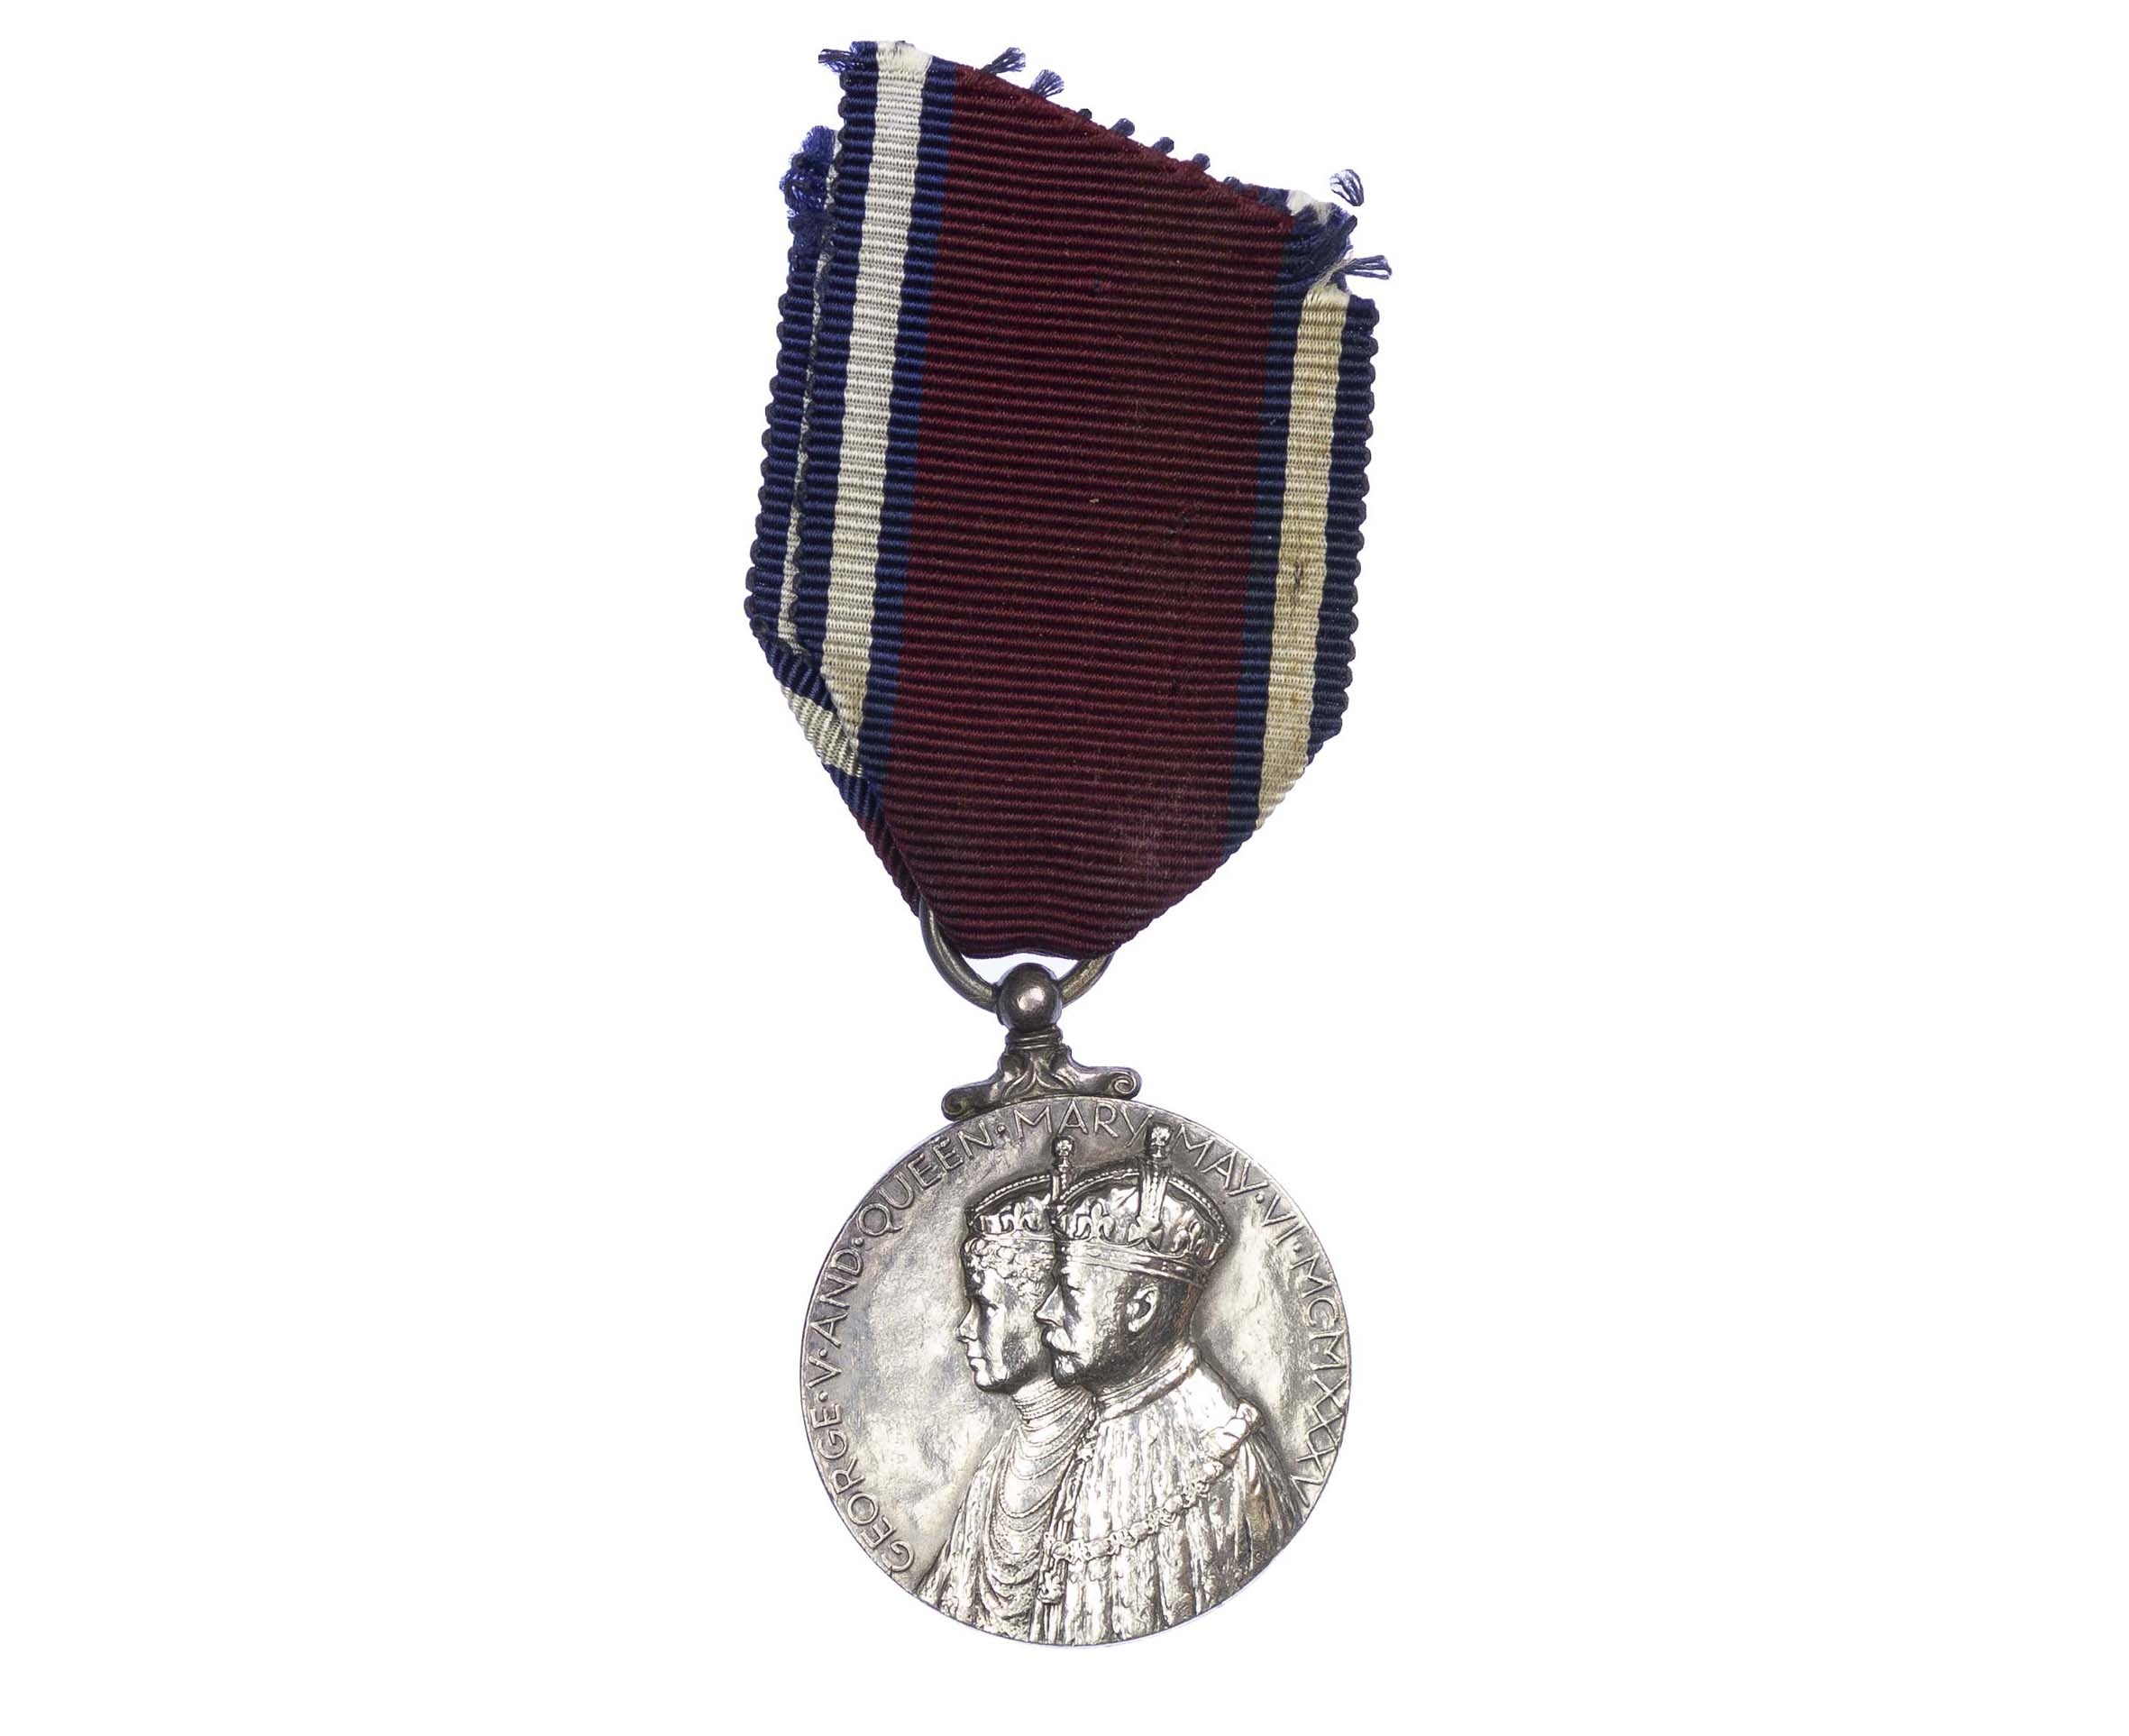 Jubilee Medal 1935, unnamed as issued